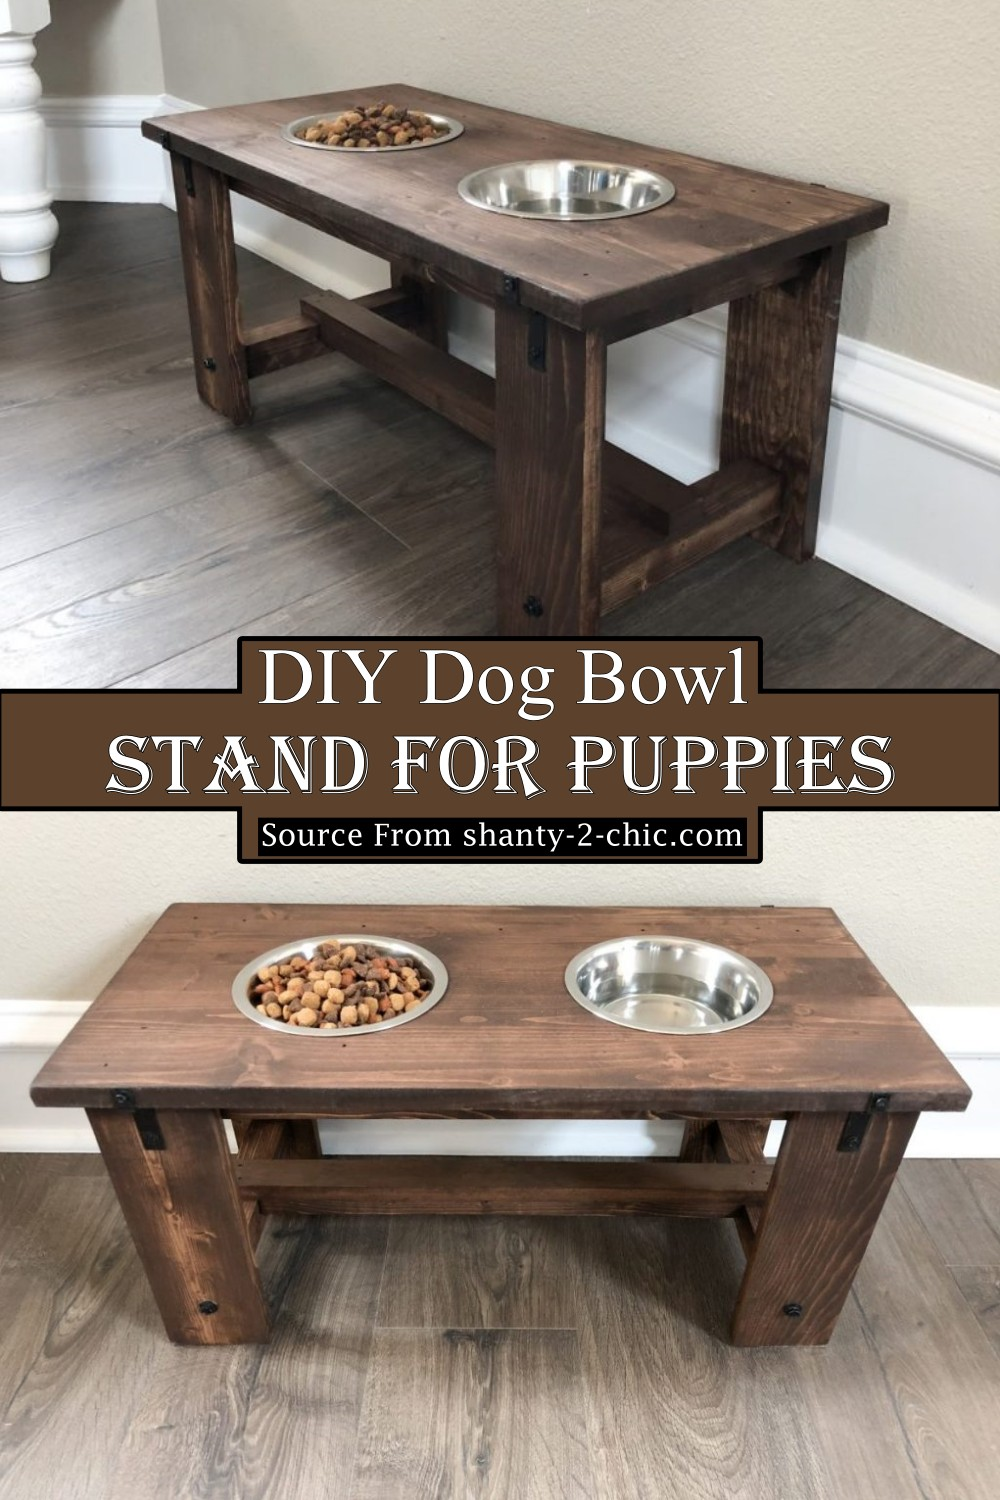 DIY Dog Bowl Stand For Puppies